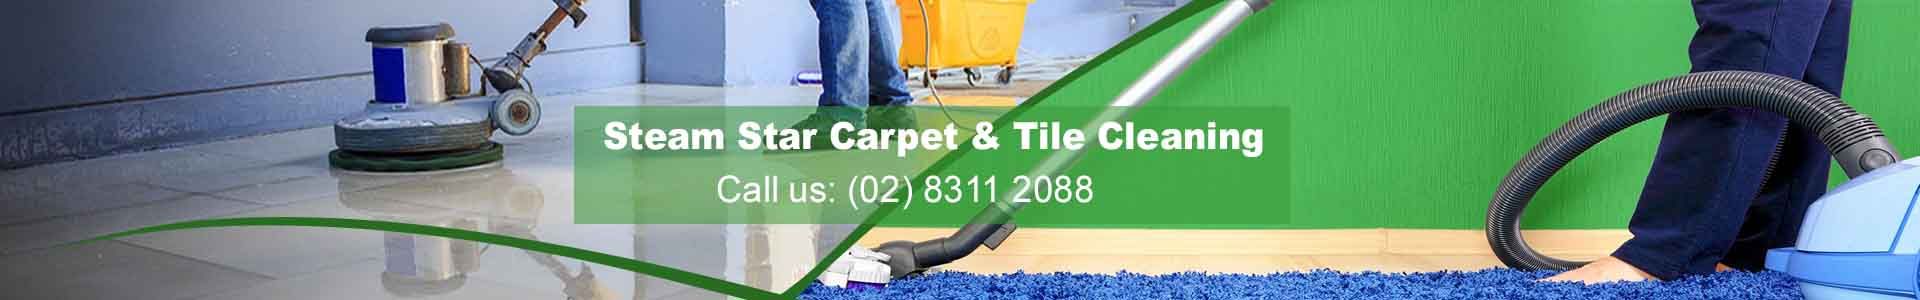 Steam Star Carpet and Tile Cleaning